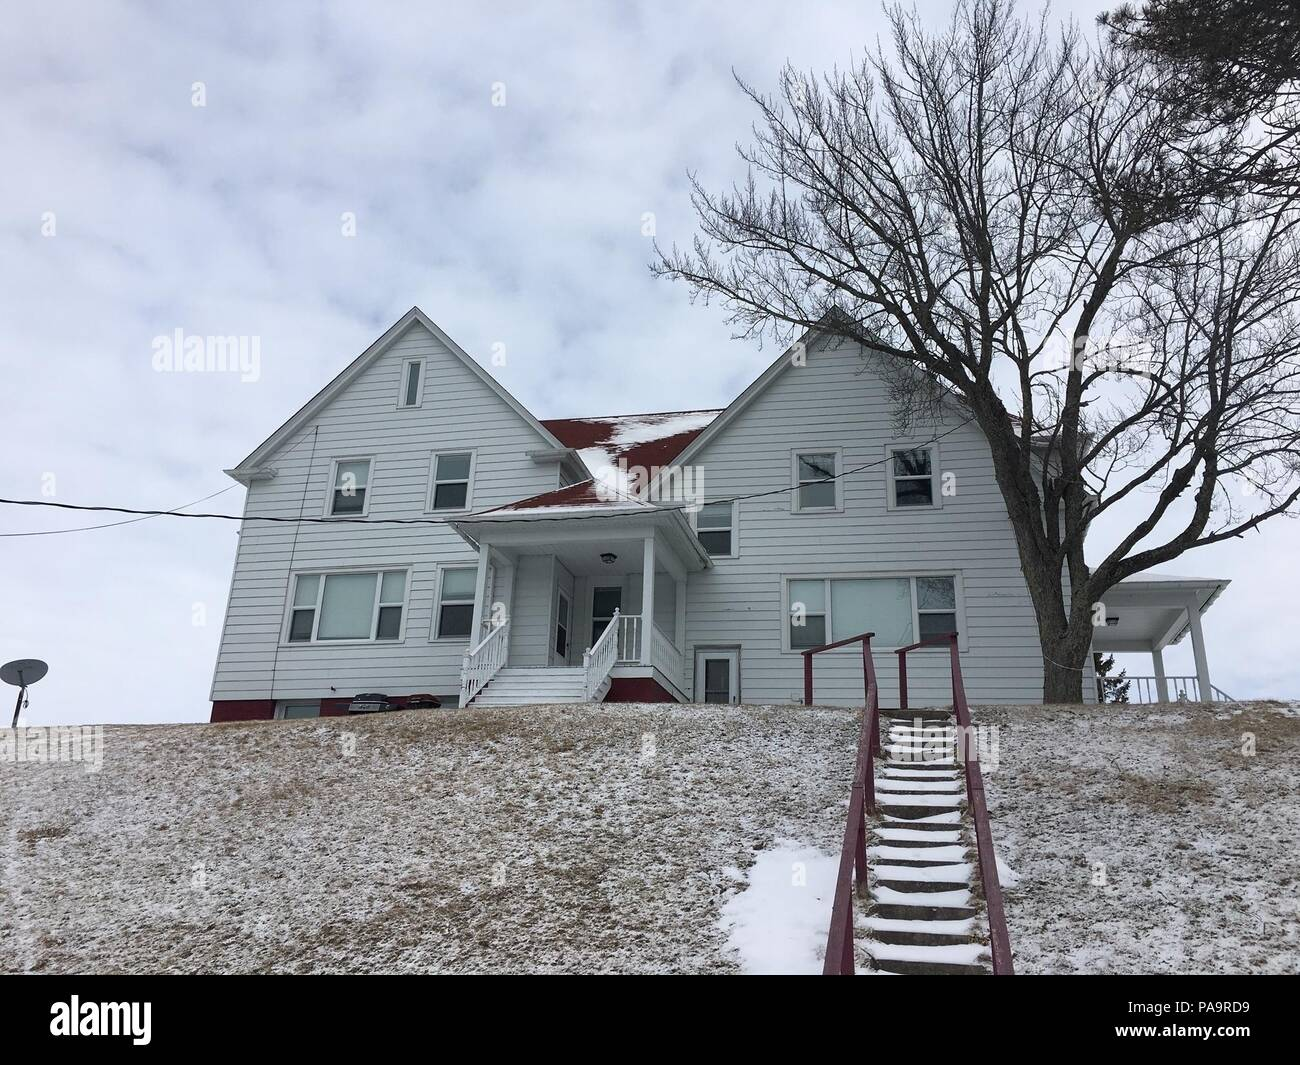 The U.S. Coast Guard is proposing to demolish this housing unit, photographed March 2, 2016, located on federal property at Coast Guard Station Sturgeon Bay, Wis. Originally built in 1896 as a lightkeeper's dwelling, the building has undergone numerous interior and exterior renovations over its history and is no longer used for housing personnel.  (U.S. Coast Guard Photo by Petty Officer 1st Class Jacob Timmons) - Stock Image